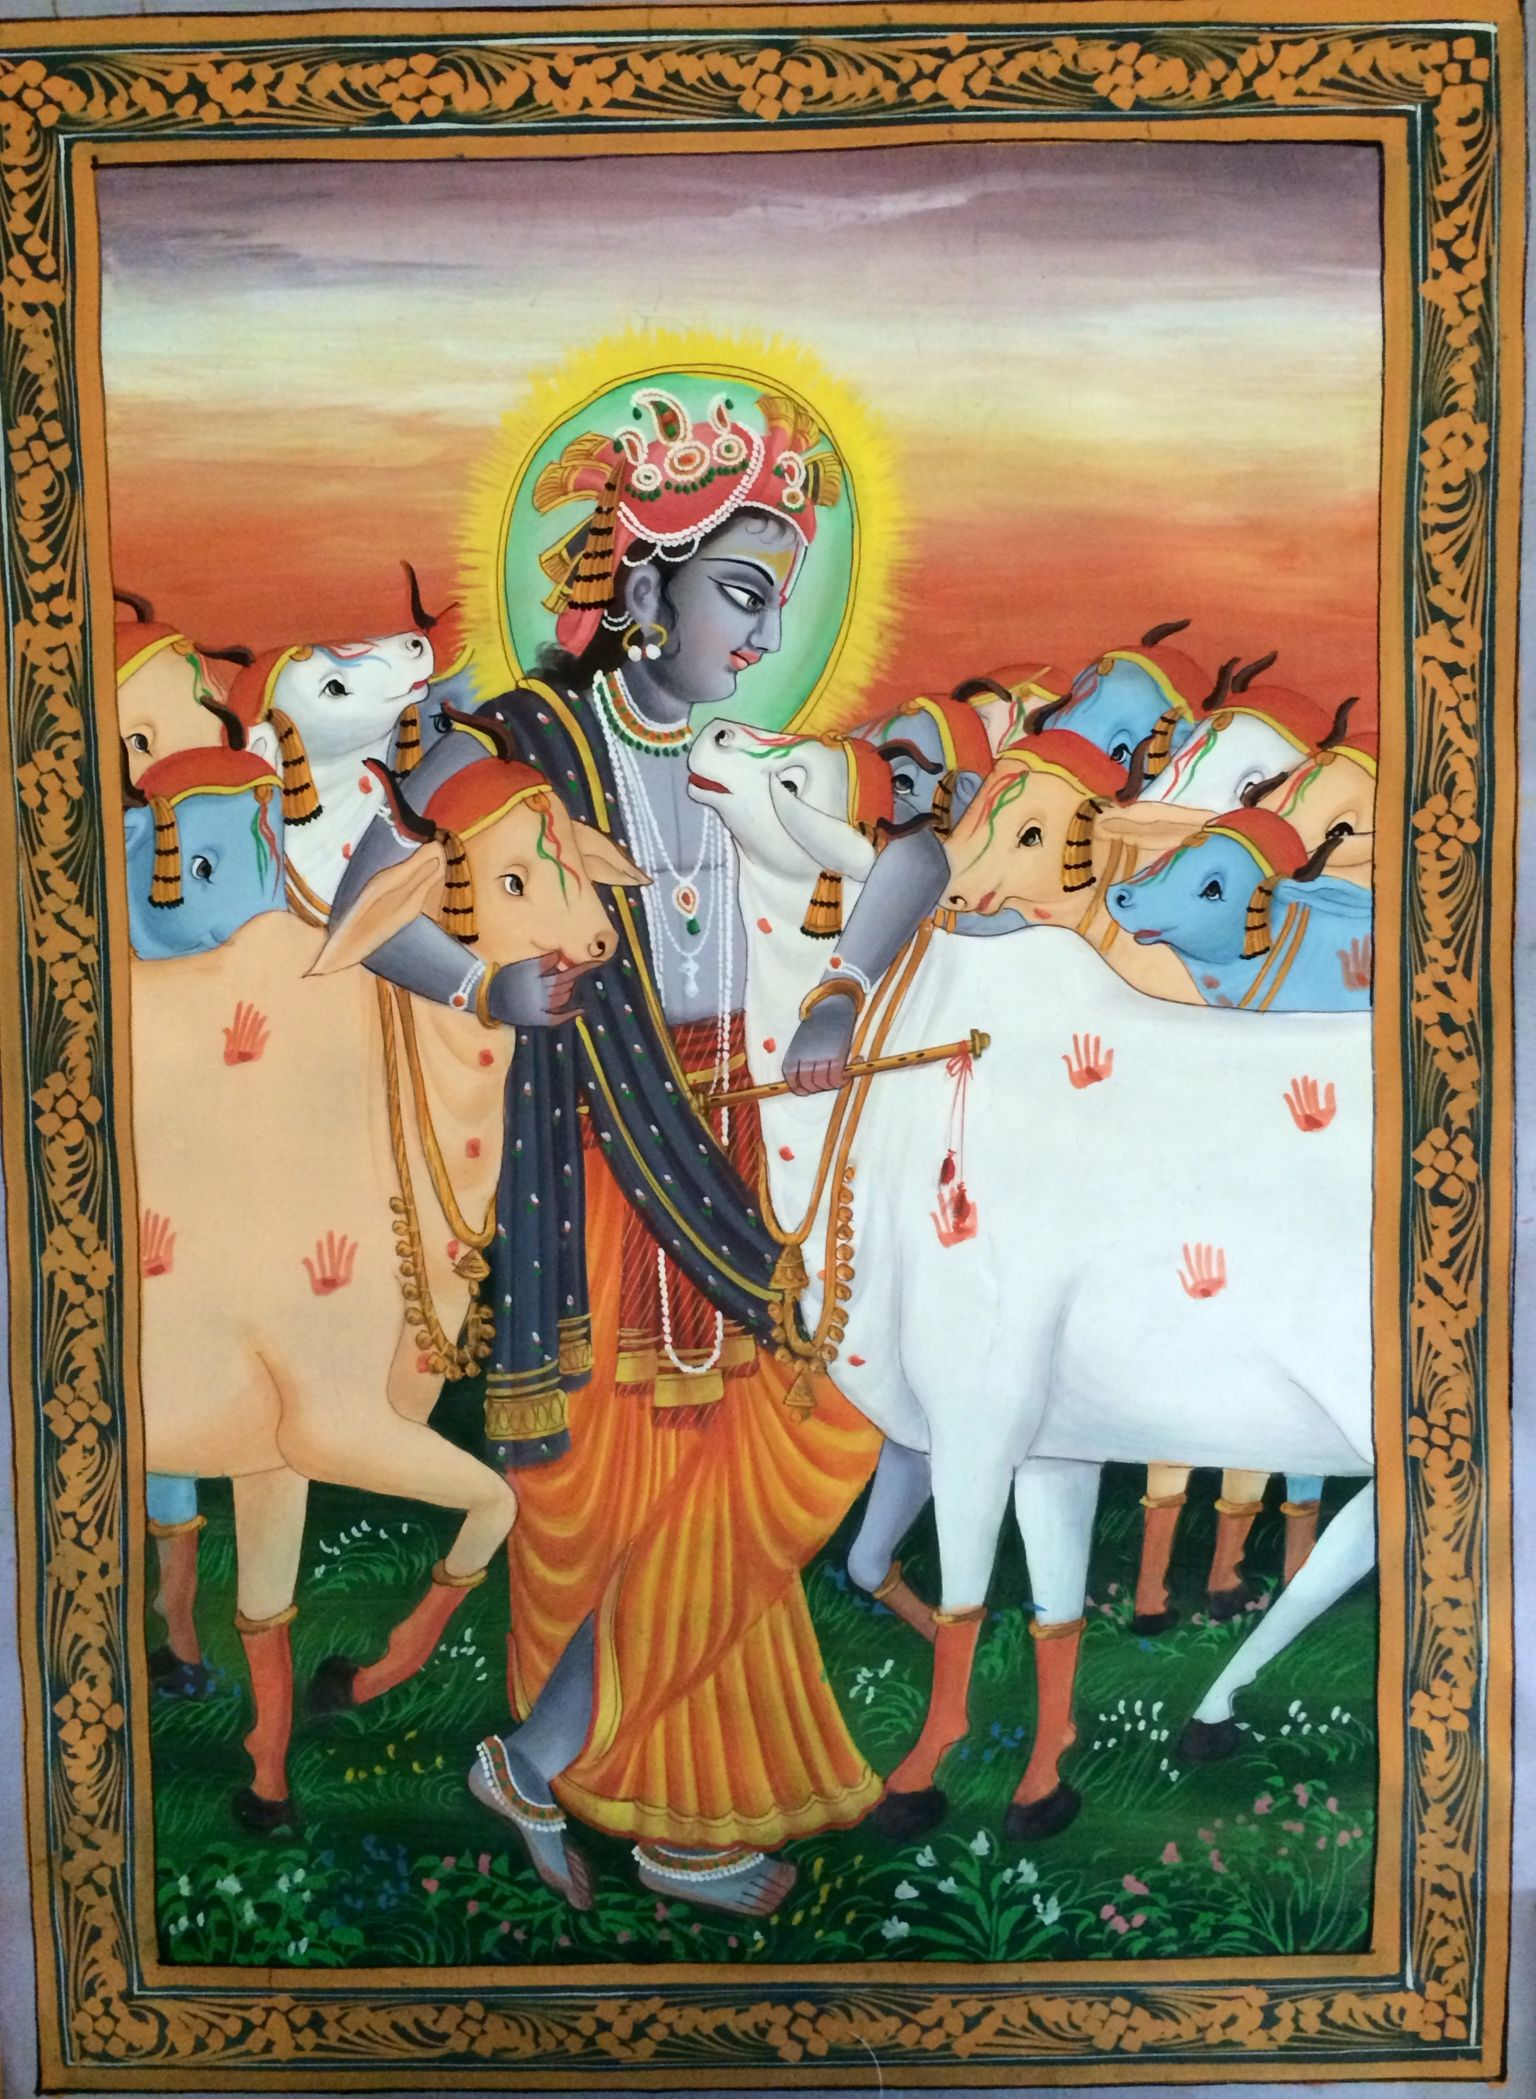 Lord Krishna with his cows - http://worcester.craigslist.org/art ...